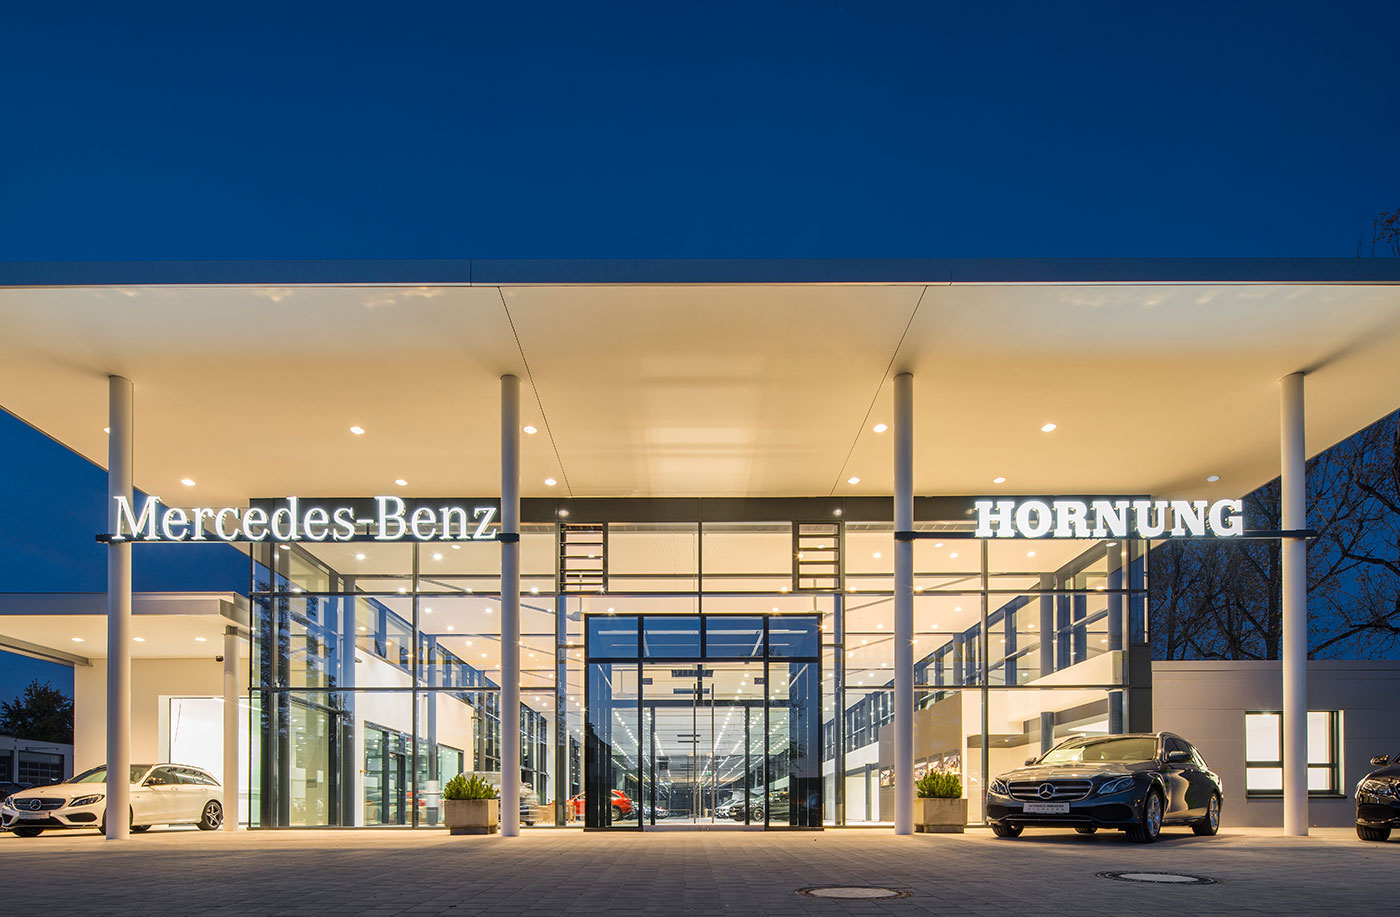 AUTOHAUS HORNUNG Showroom frontal